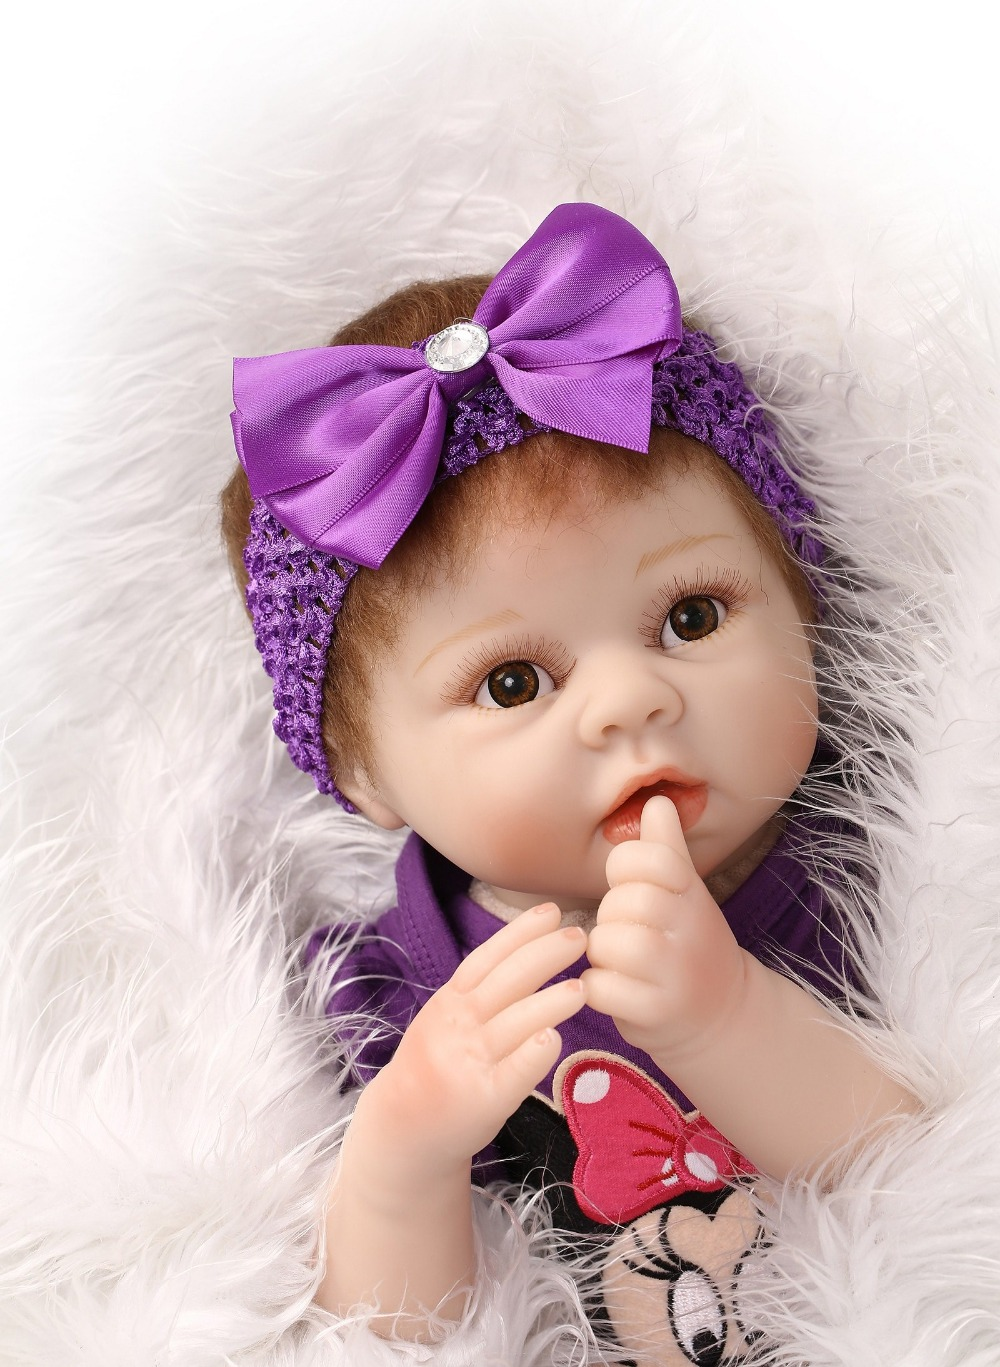 22 Inch NPK Reborn Dolls Collection Handmade Realistic Silicone Baby Doll Lifelike Newborn Dolls With Clothes